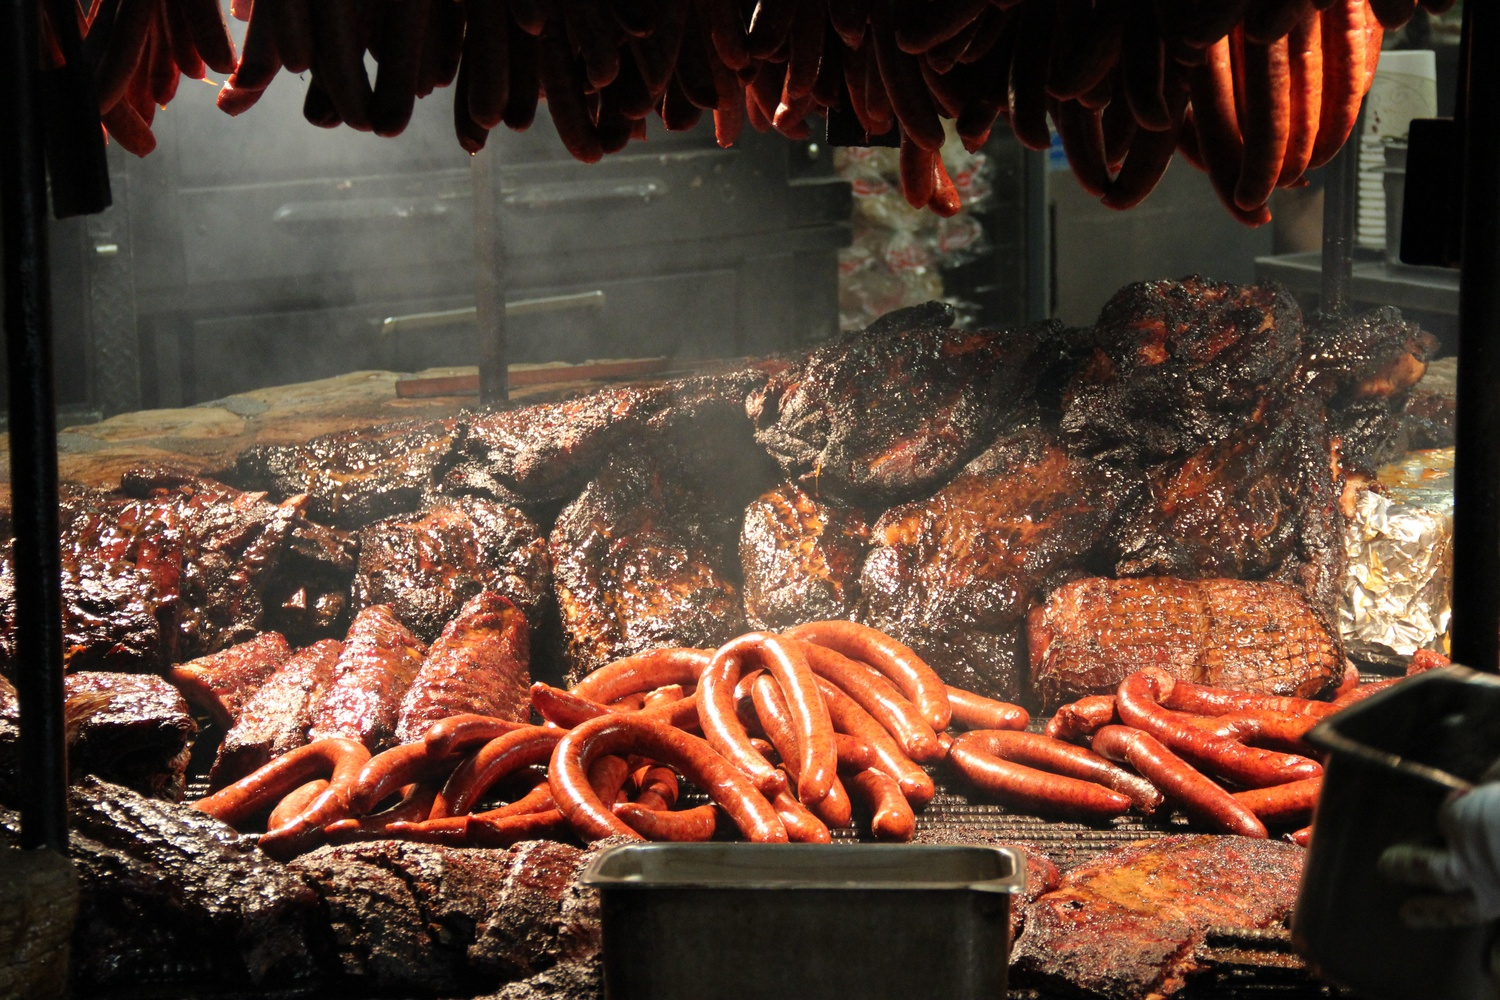 During spring break I visited The Salt Lick, a popular barbecue restaurant in Driftwood, Texas. Inside is a wood-fired pit where meat is kept warm after a long smoking process.